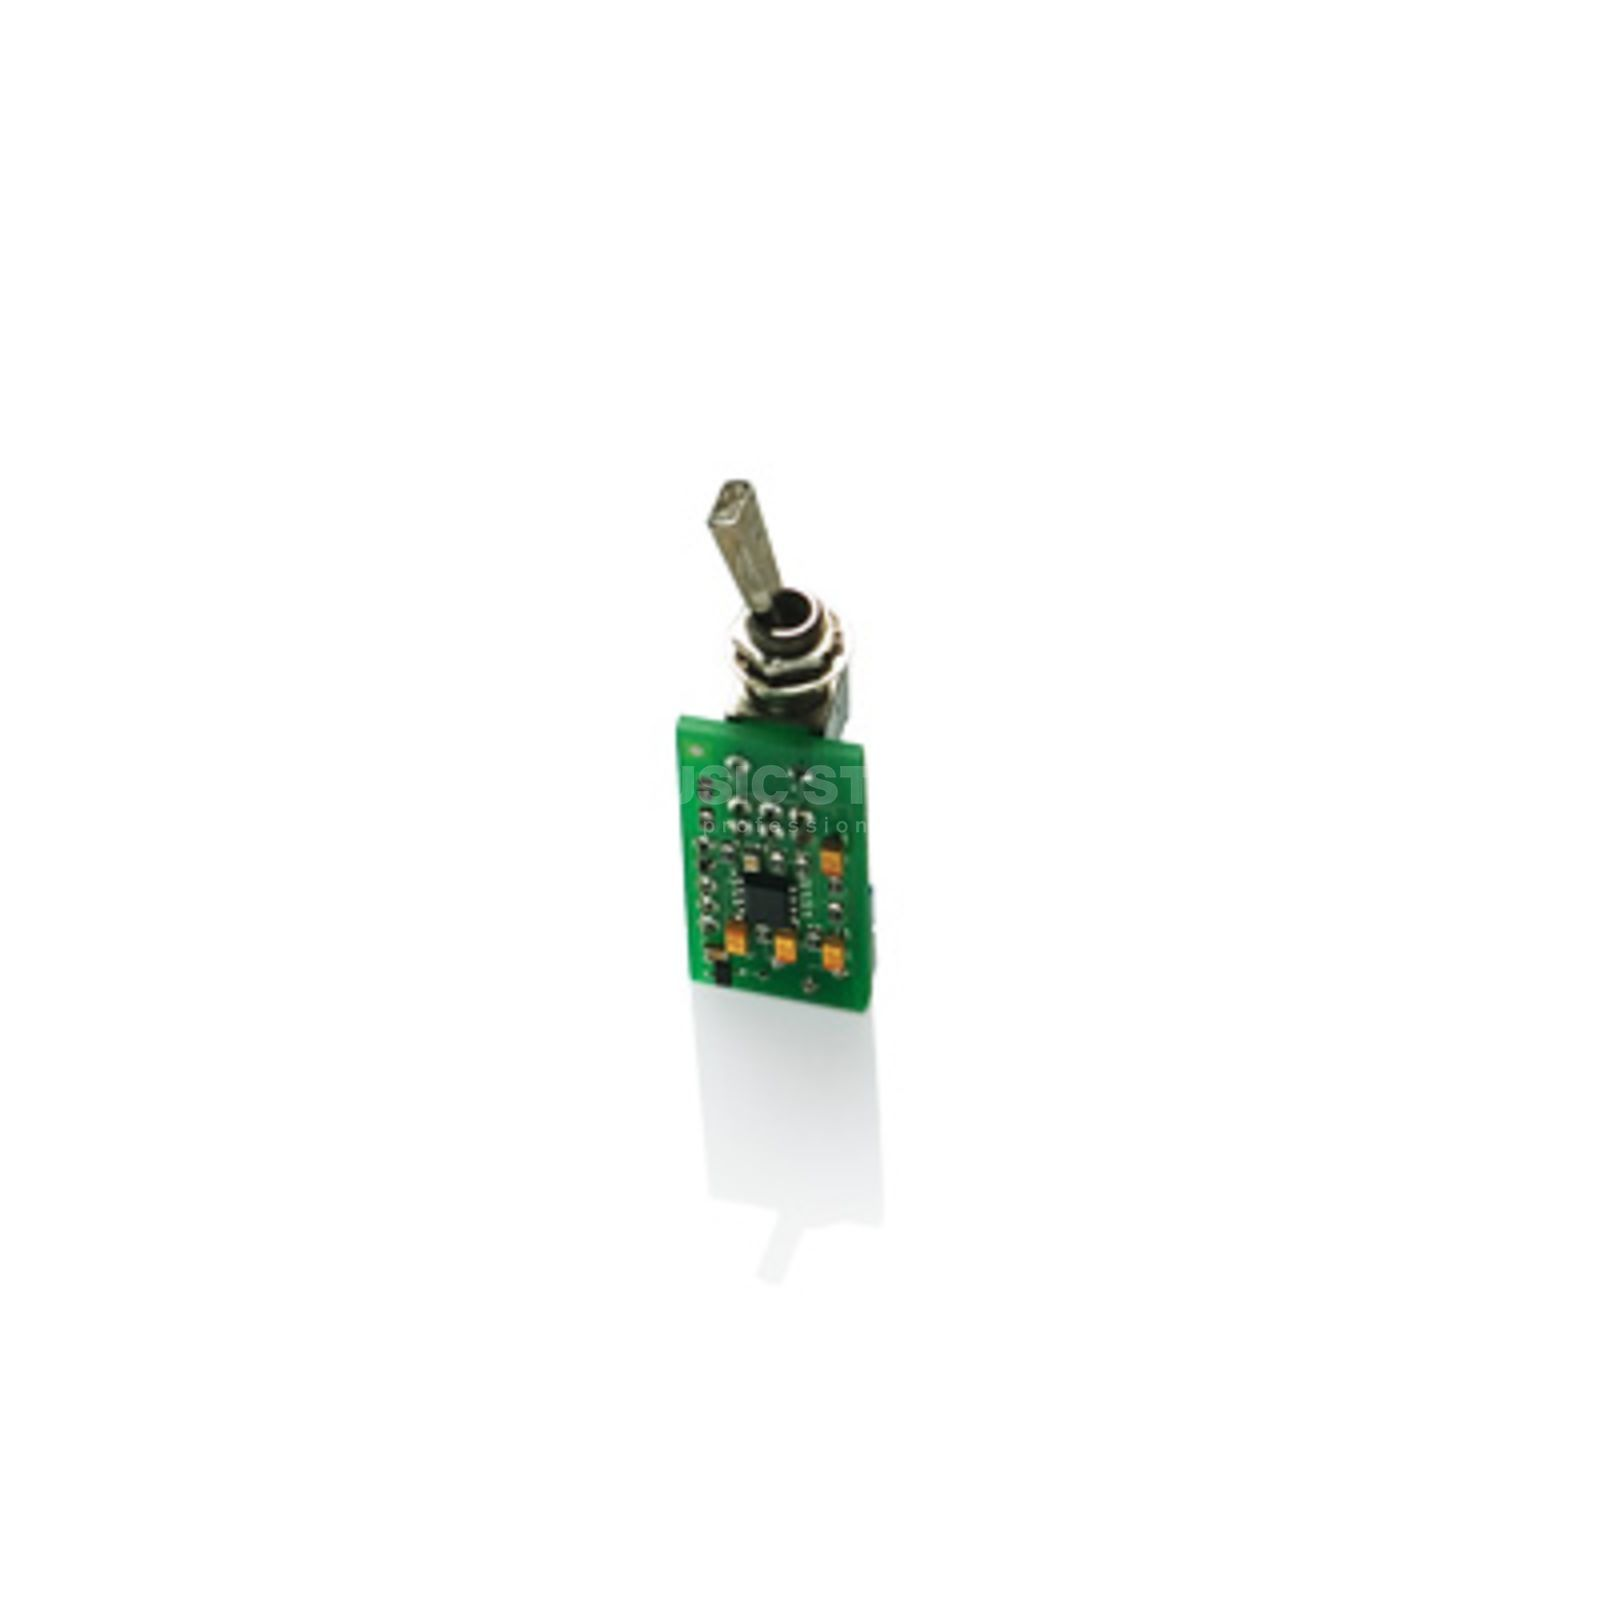 EMG PA 2 Preamp Booster Boost 0 - 20 dB, 1 Miniswitch Produktbild